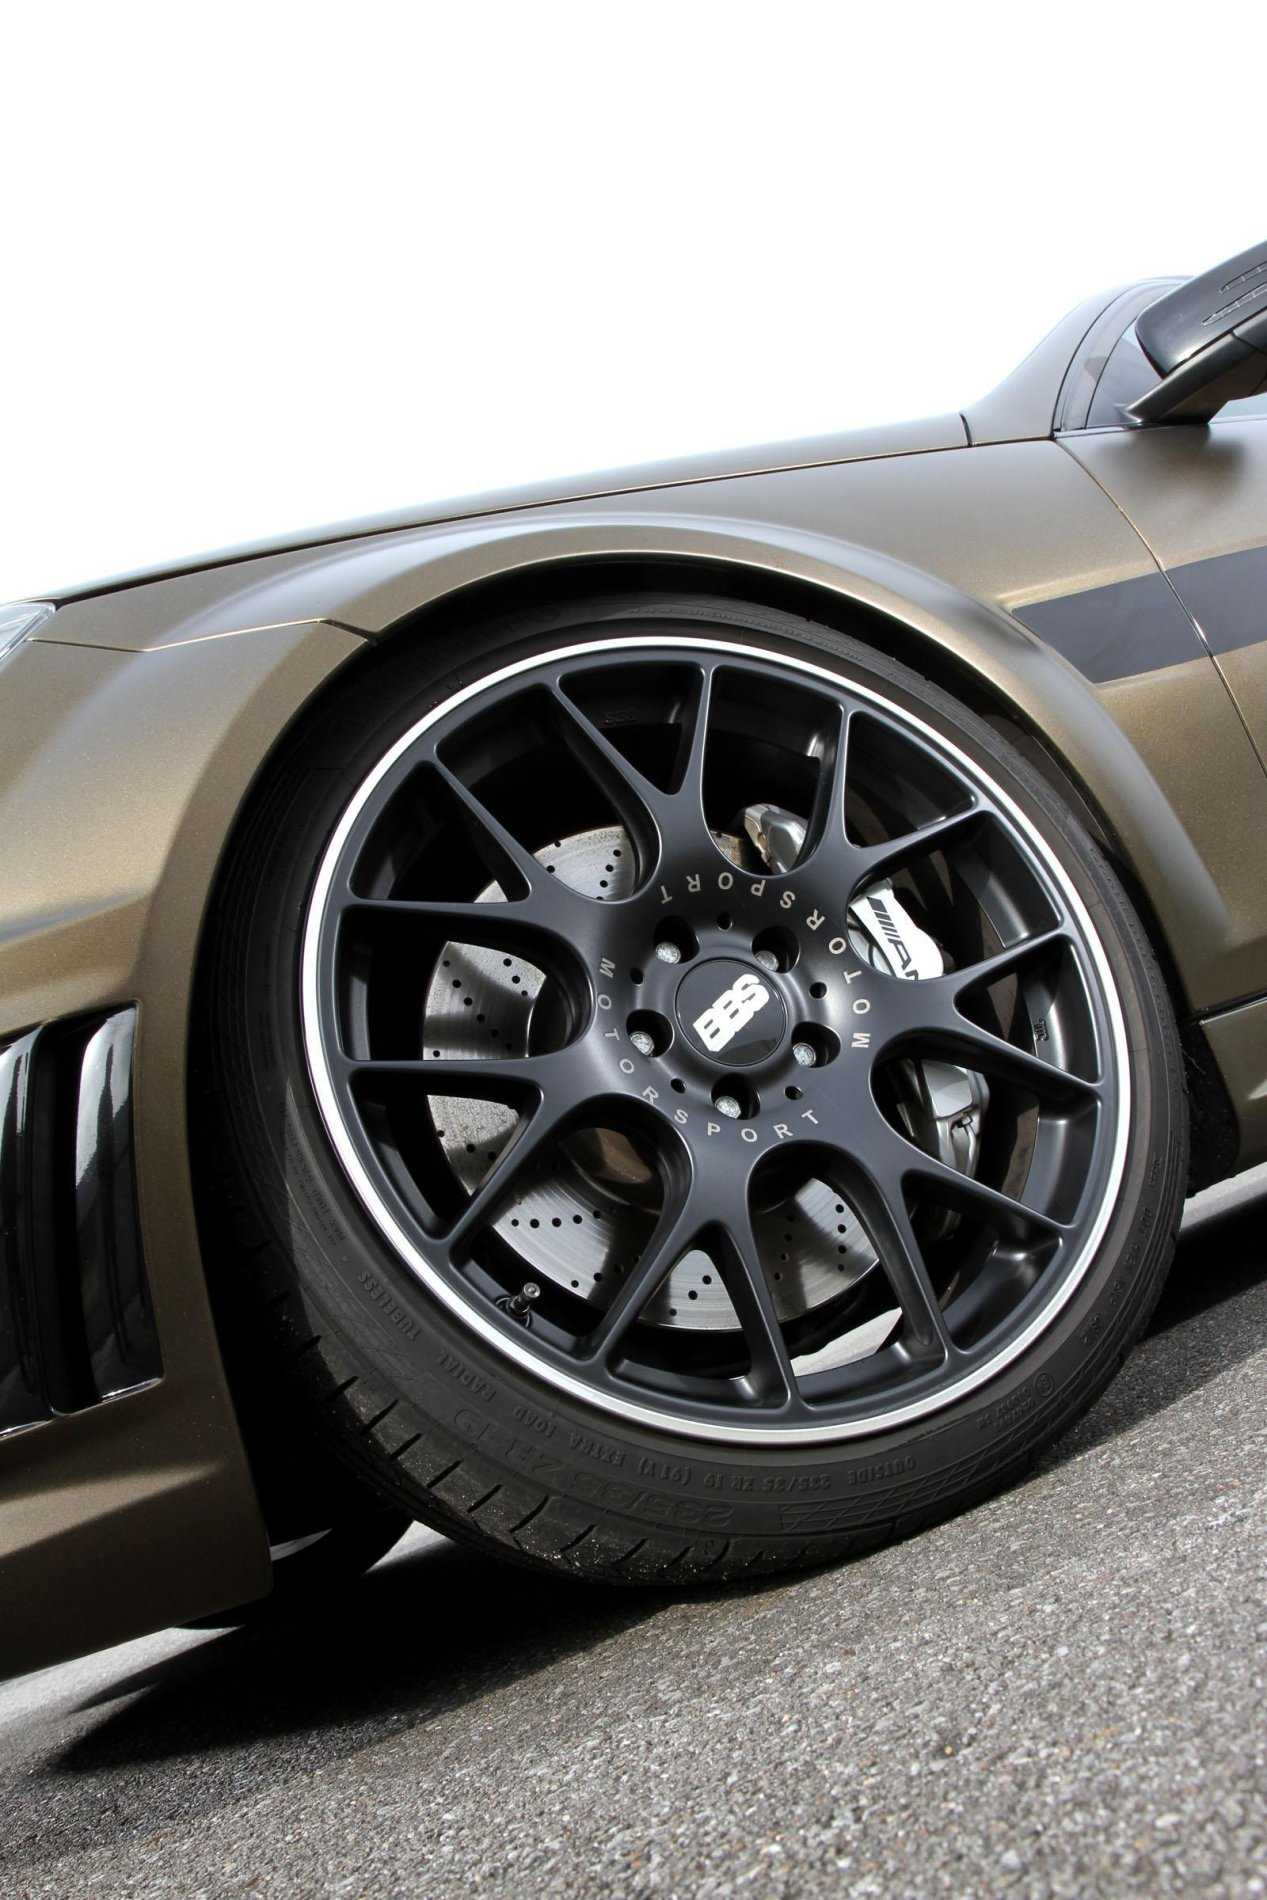 Mercedes C63 AMG T-Modell by SR-Performance - Mercedes C63 AMG T-Modell by SR-Performance